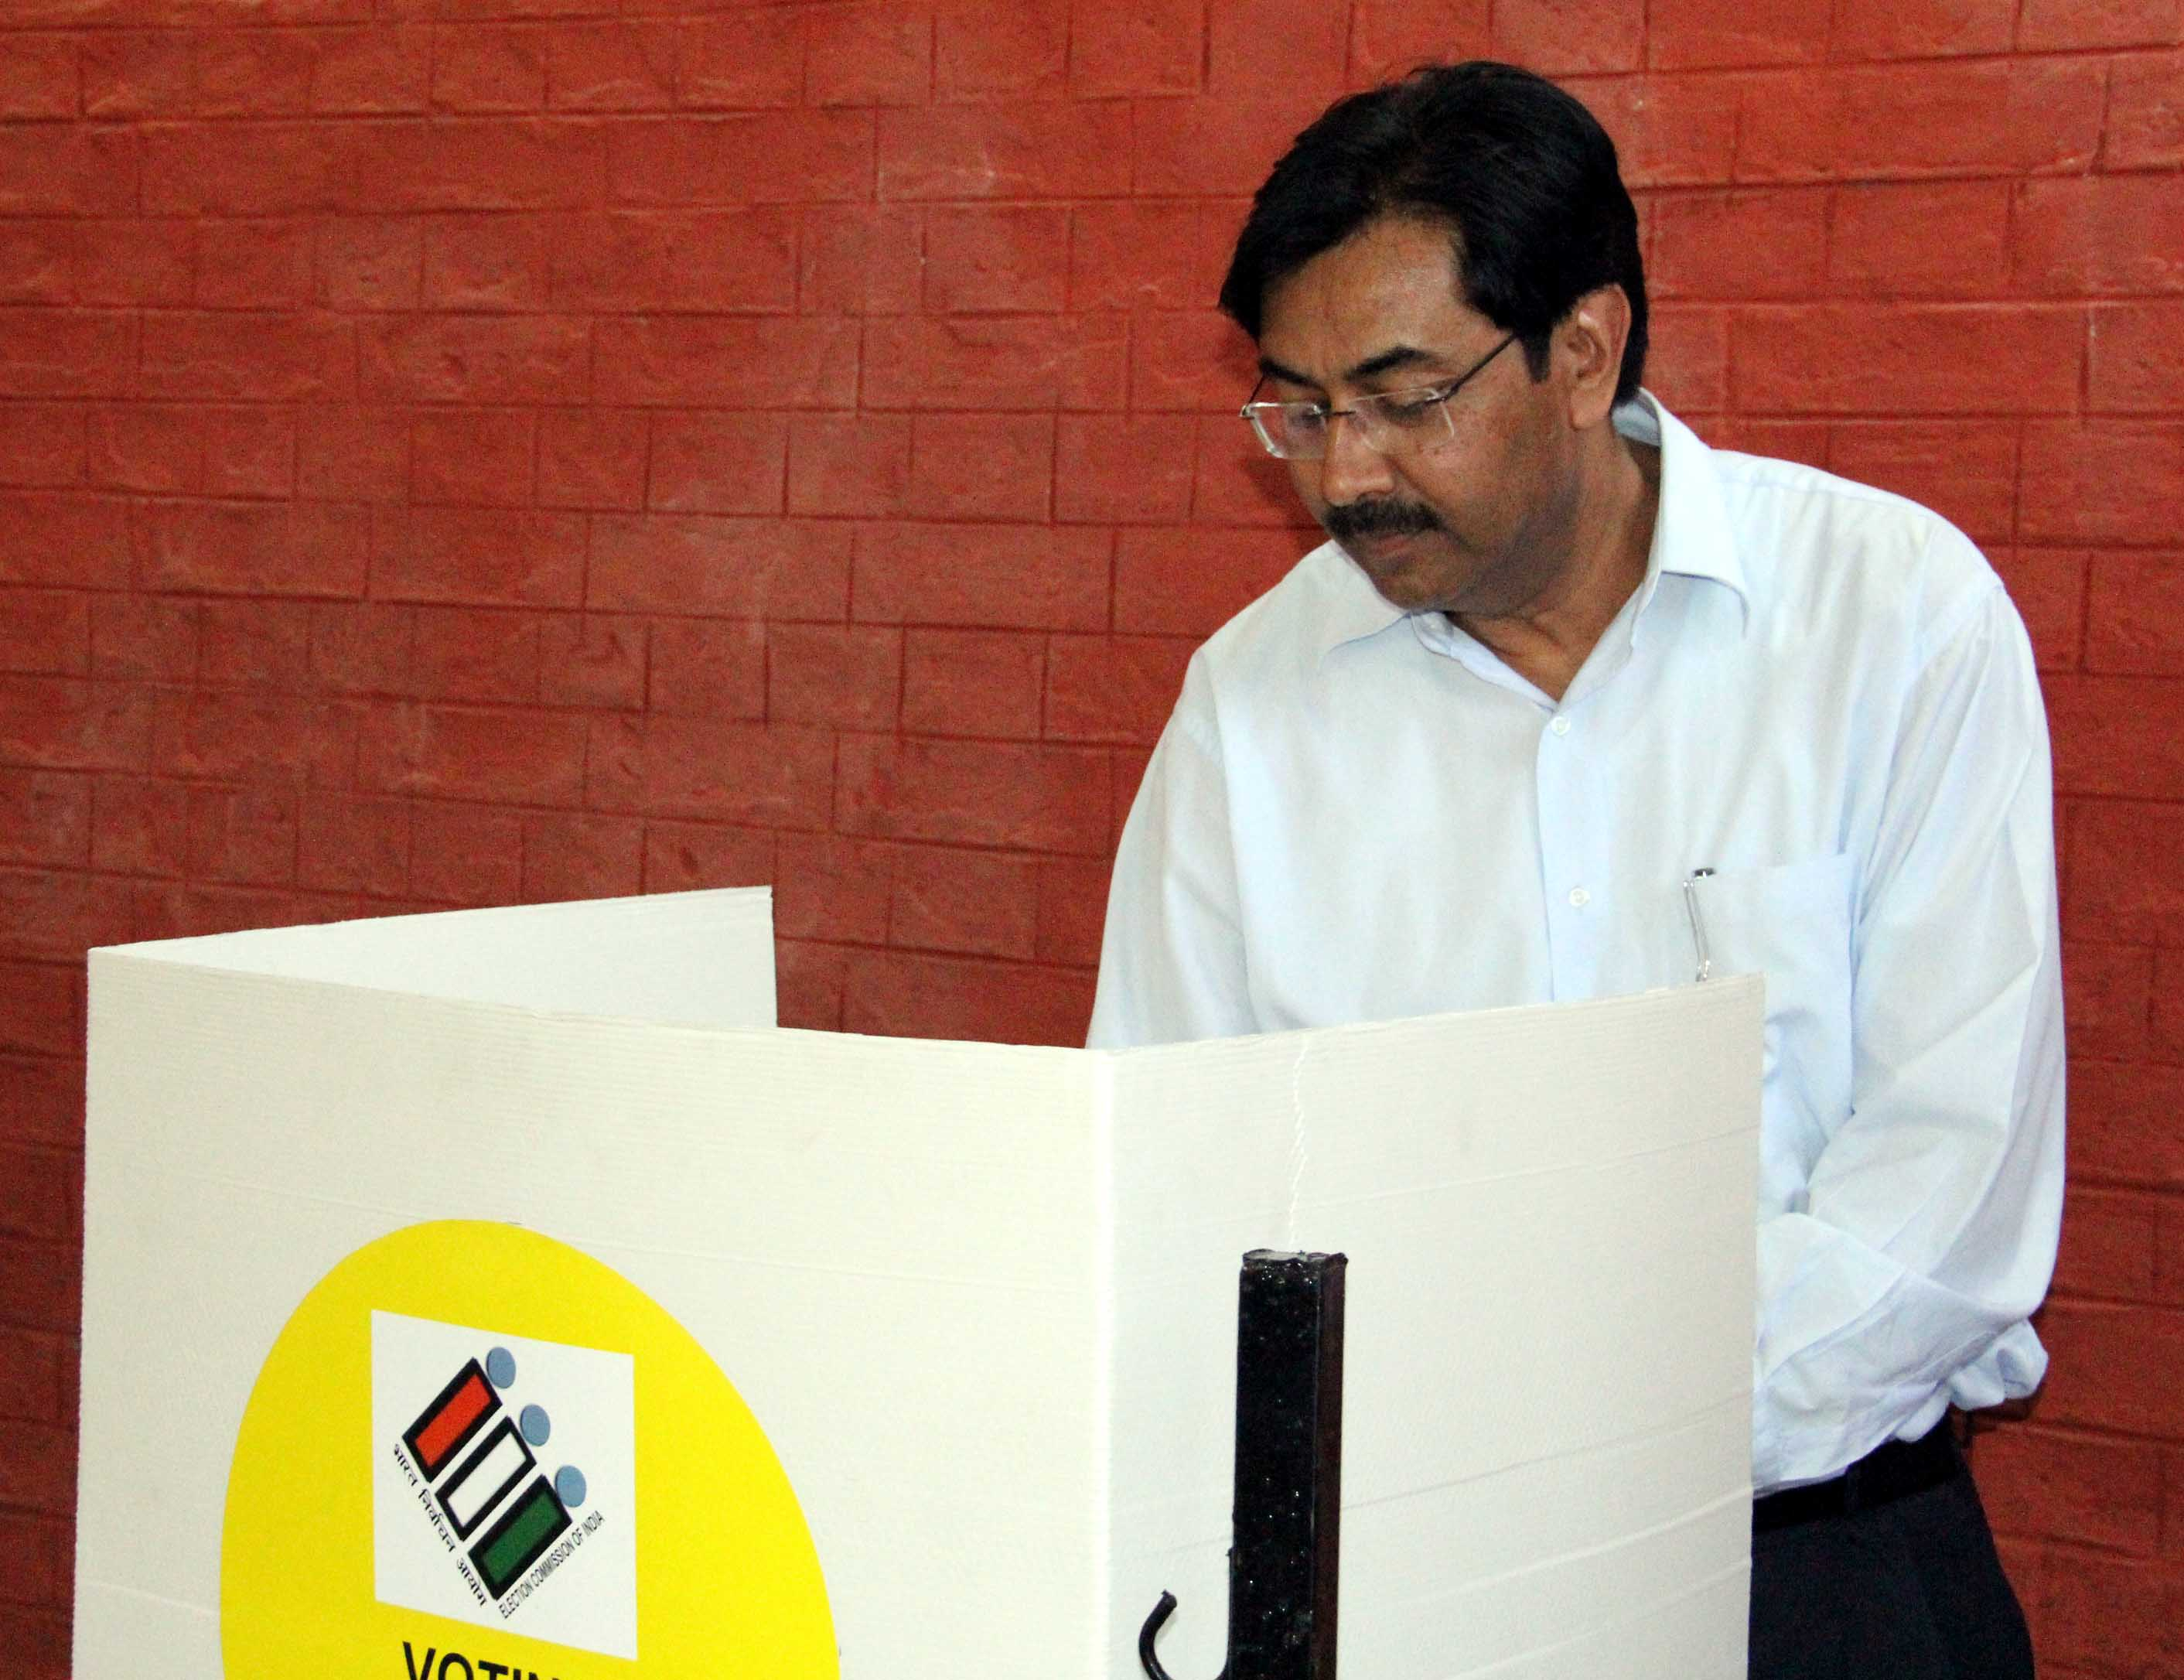 UT Home Secretary-Cum-Chief Electoral Officer, Mr. Anil Kumar casting his vote for General Elections to Lok Sabha-2014 of Chandigarh Parliamentary Constituency at polling booth Sector-16, Chandigarh on Thursday, April 10, 2014.